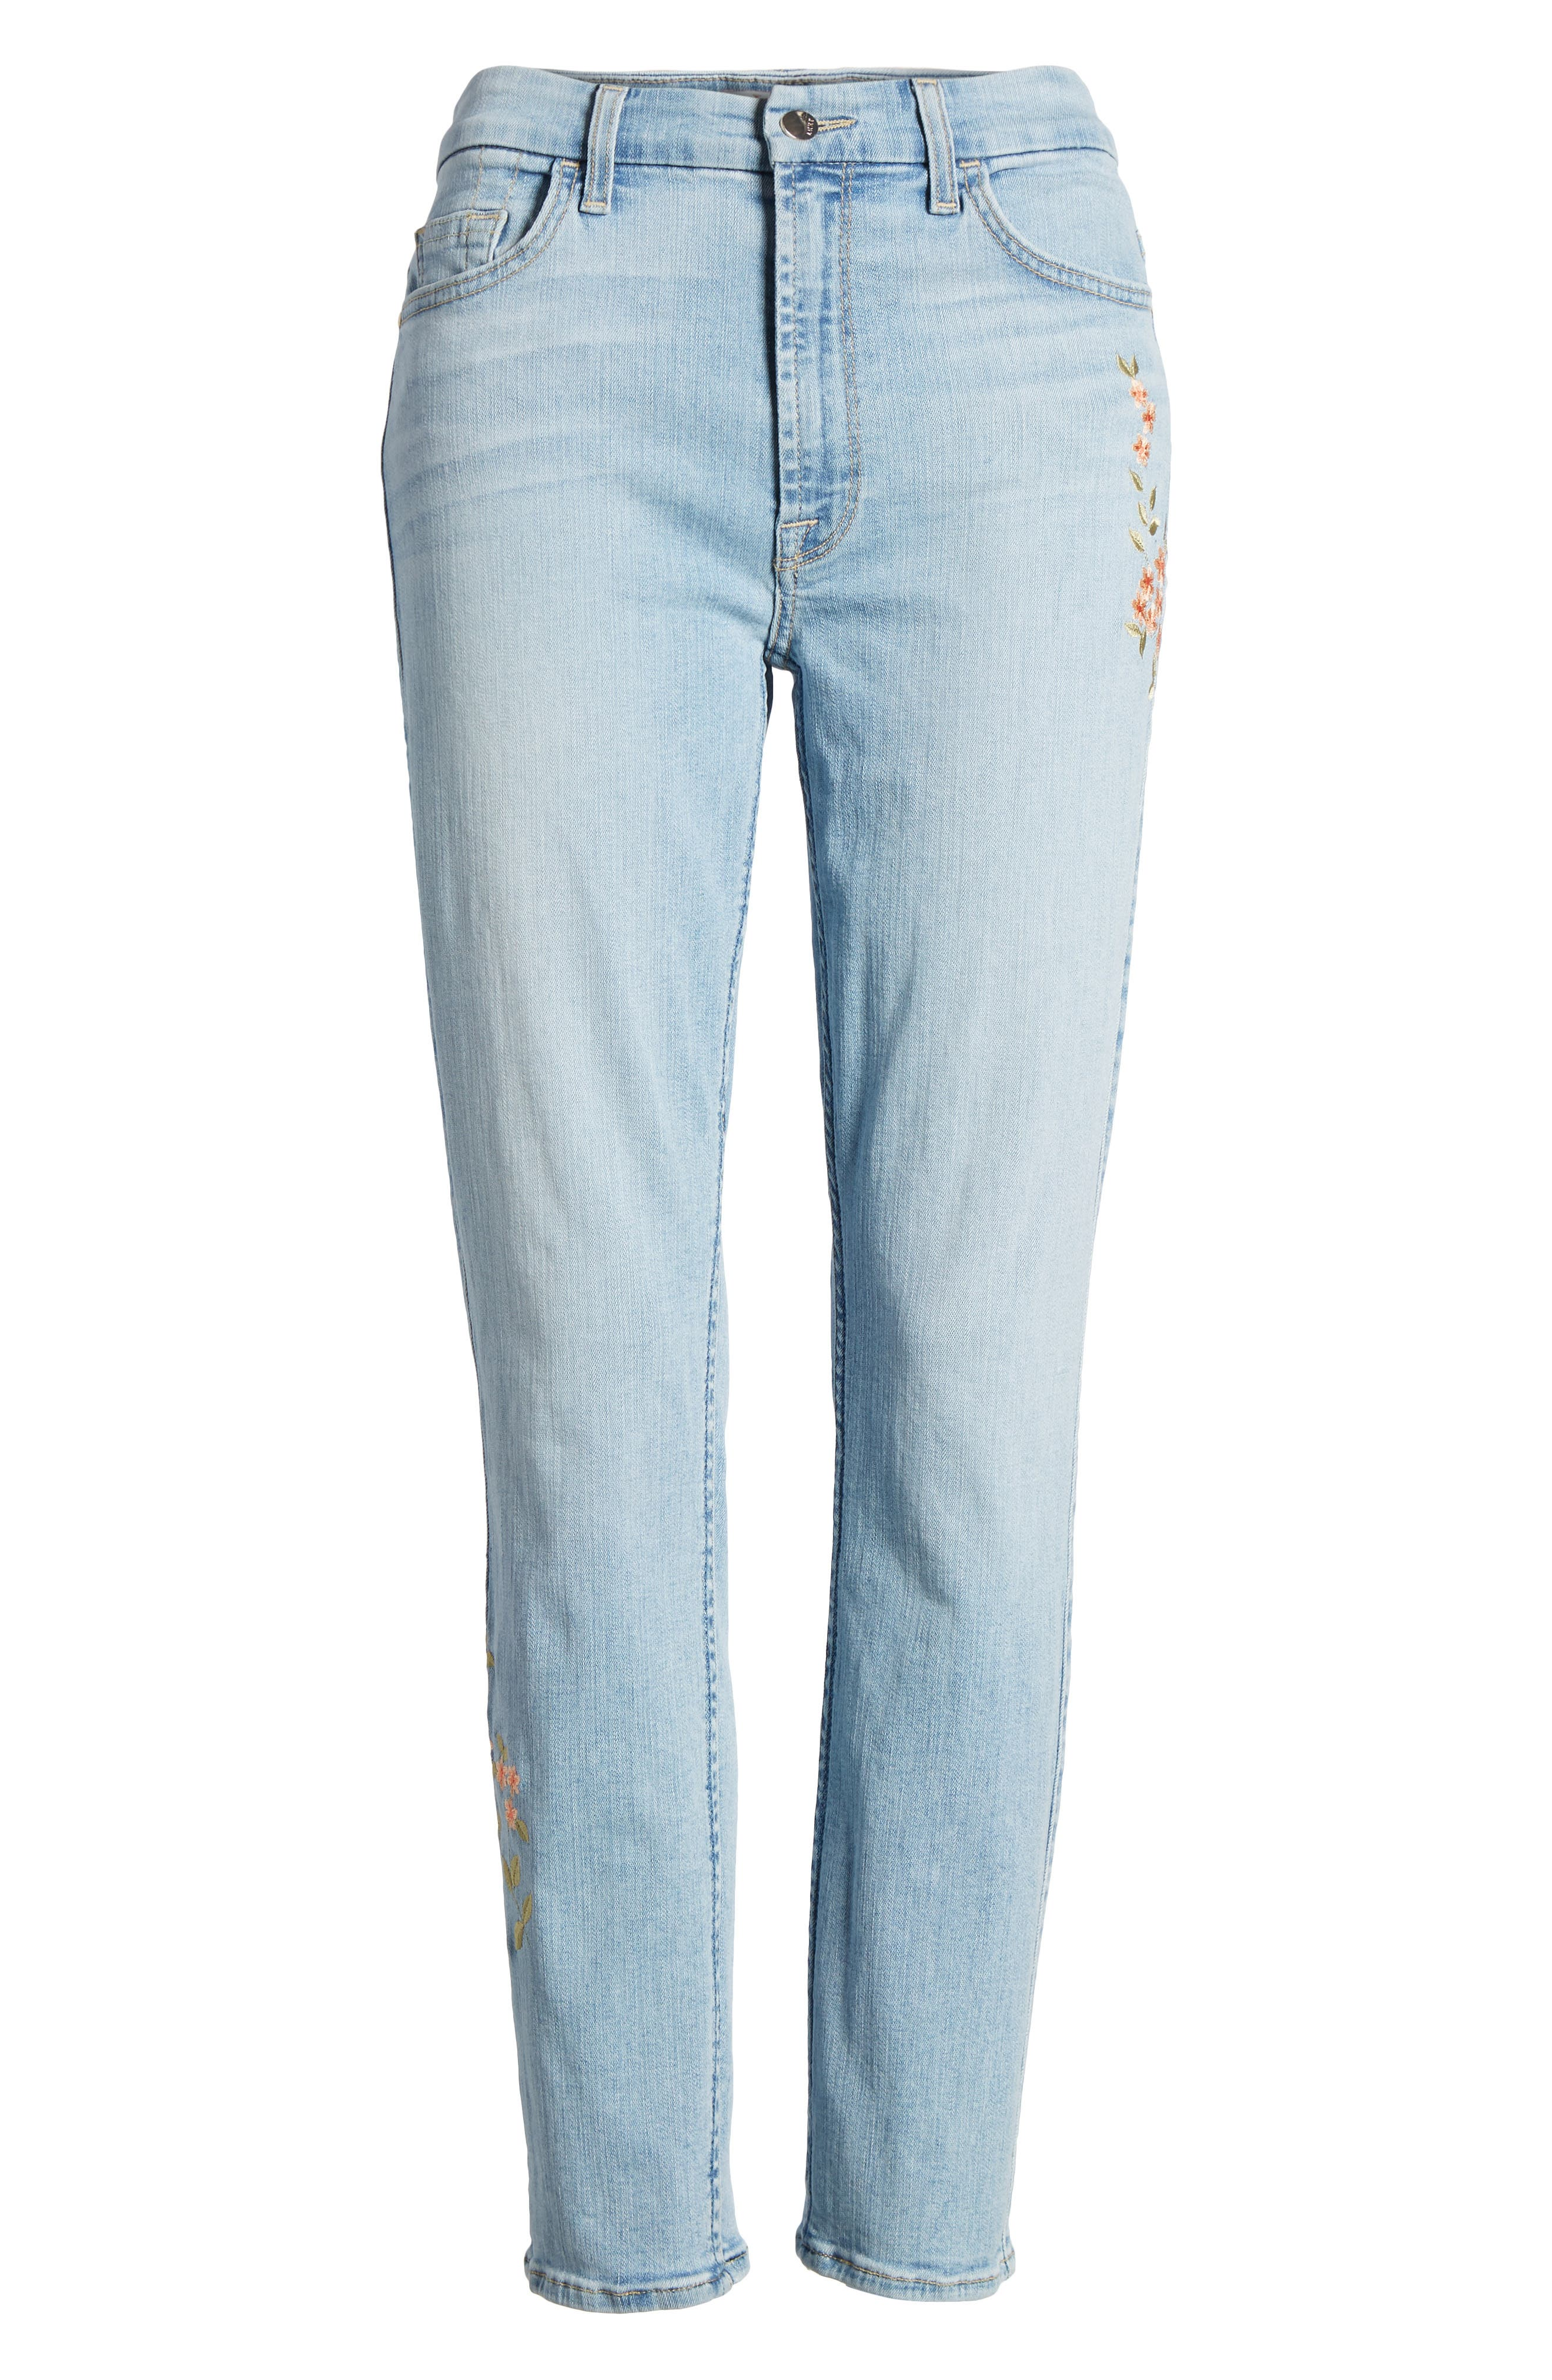 Embroidered Slim Boyfriend Jeans,                             Alternate thumbnail 7, color,                             RICHE TOUCH PLAYA VISTA